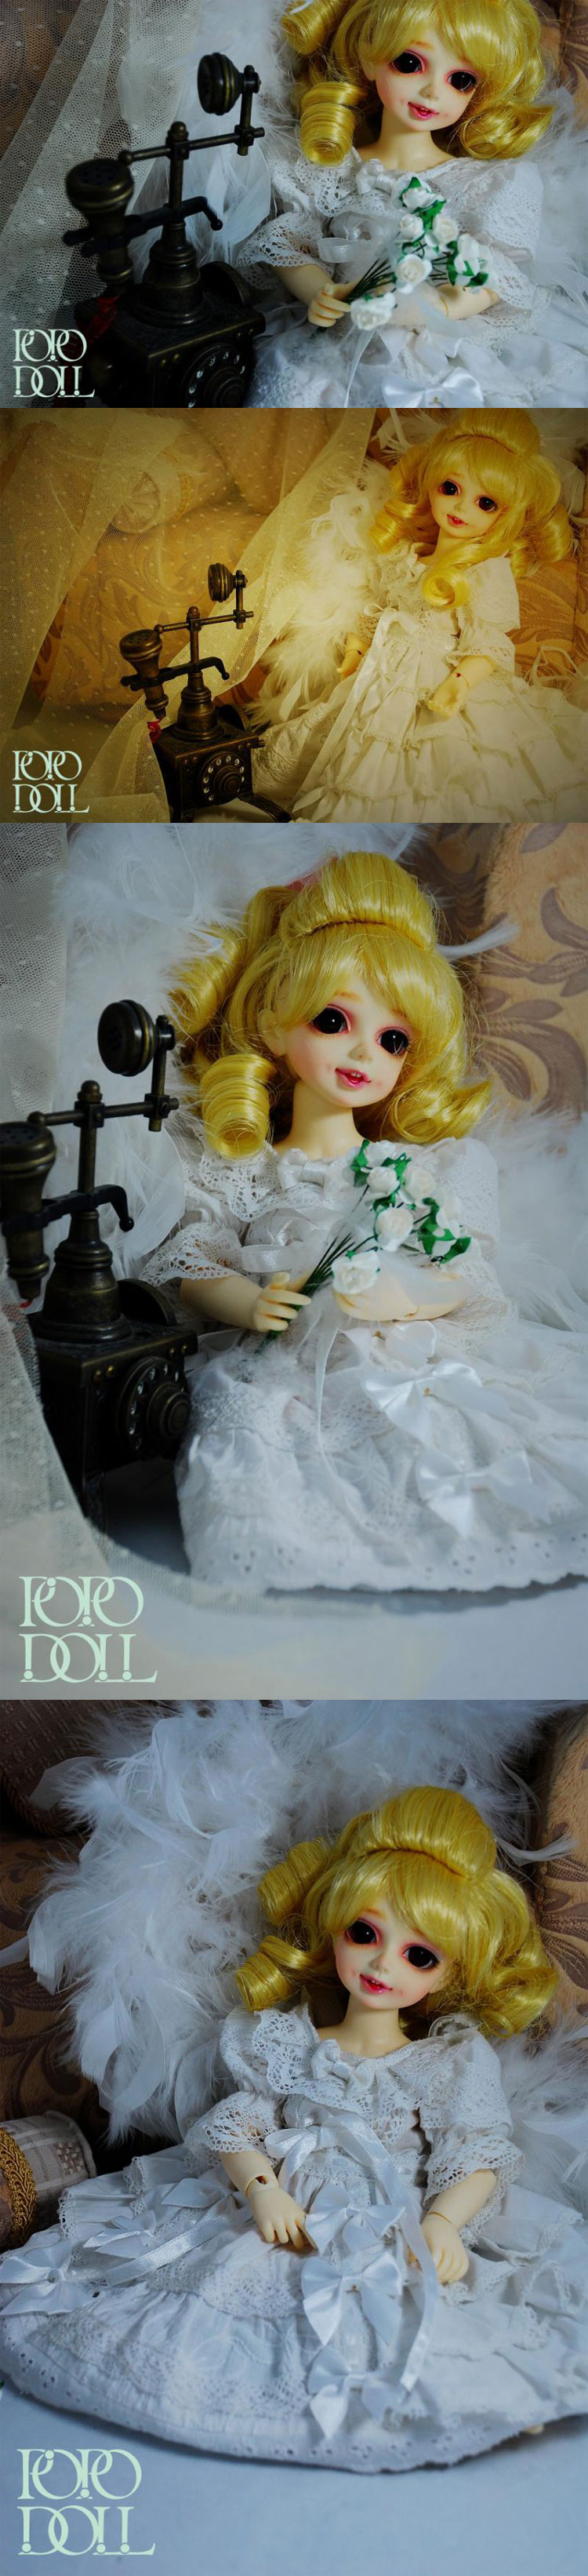 BJD Lulu 30cm Boll-jointed doll